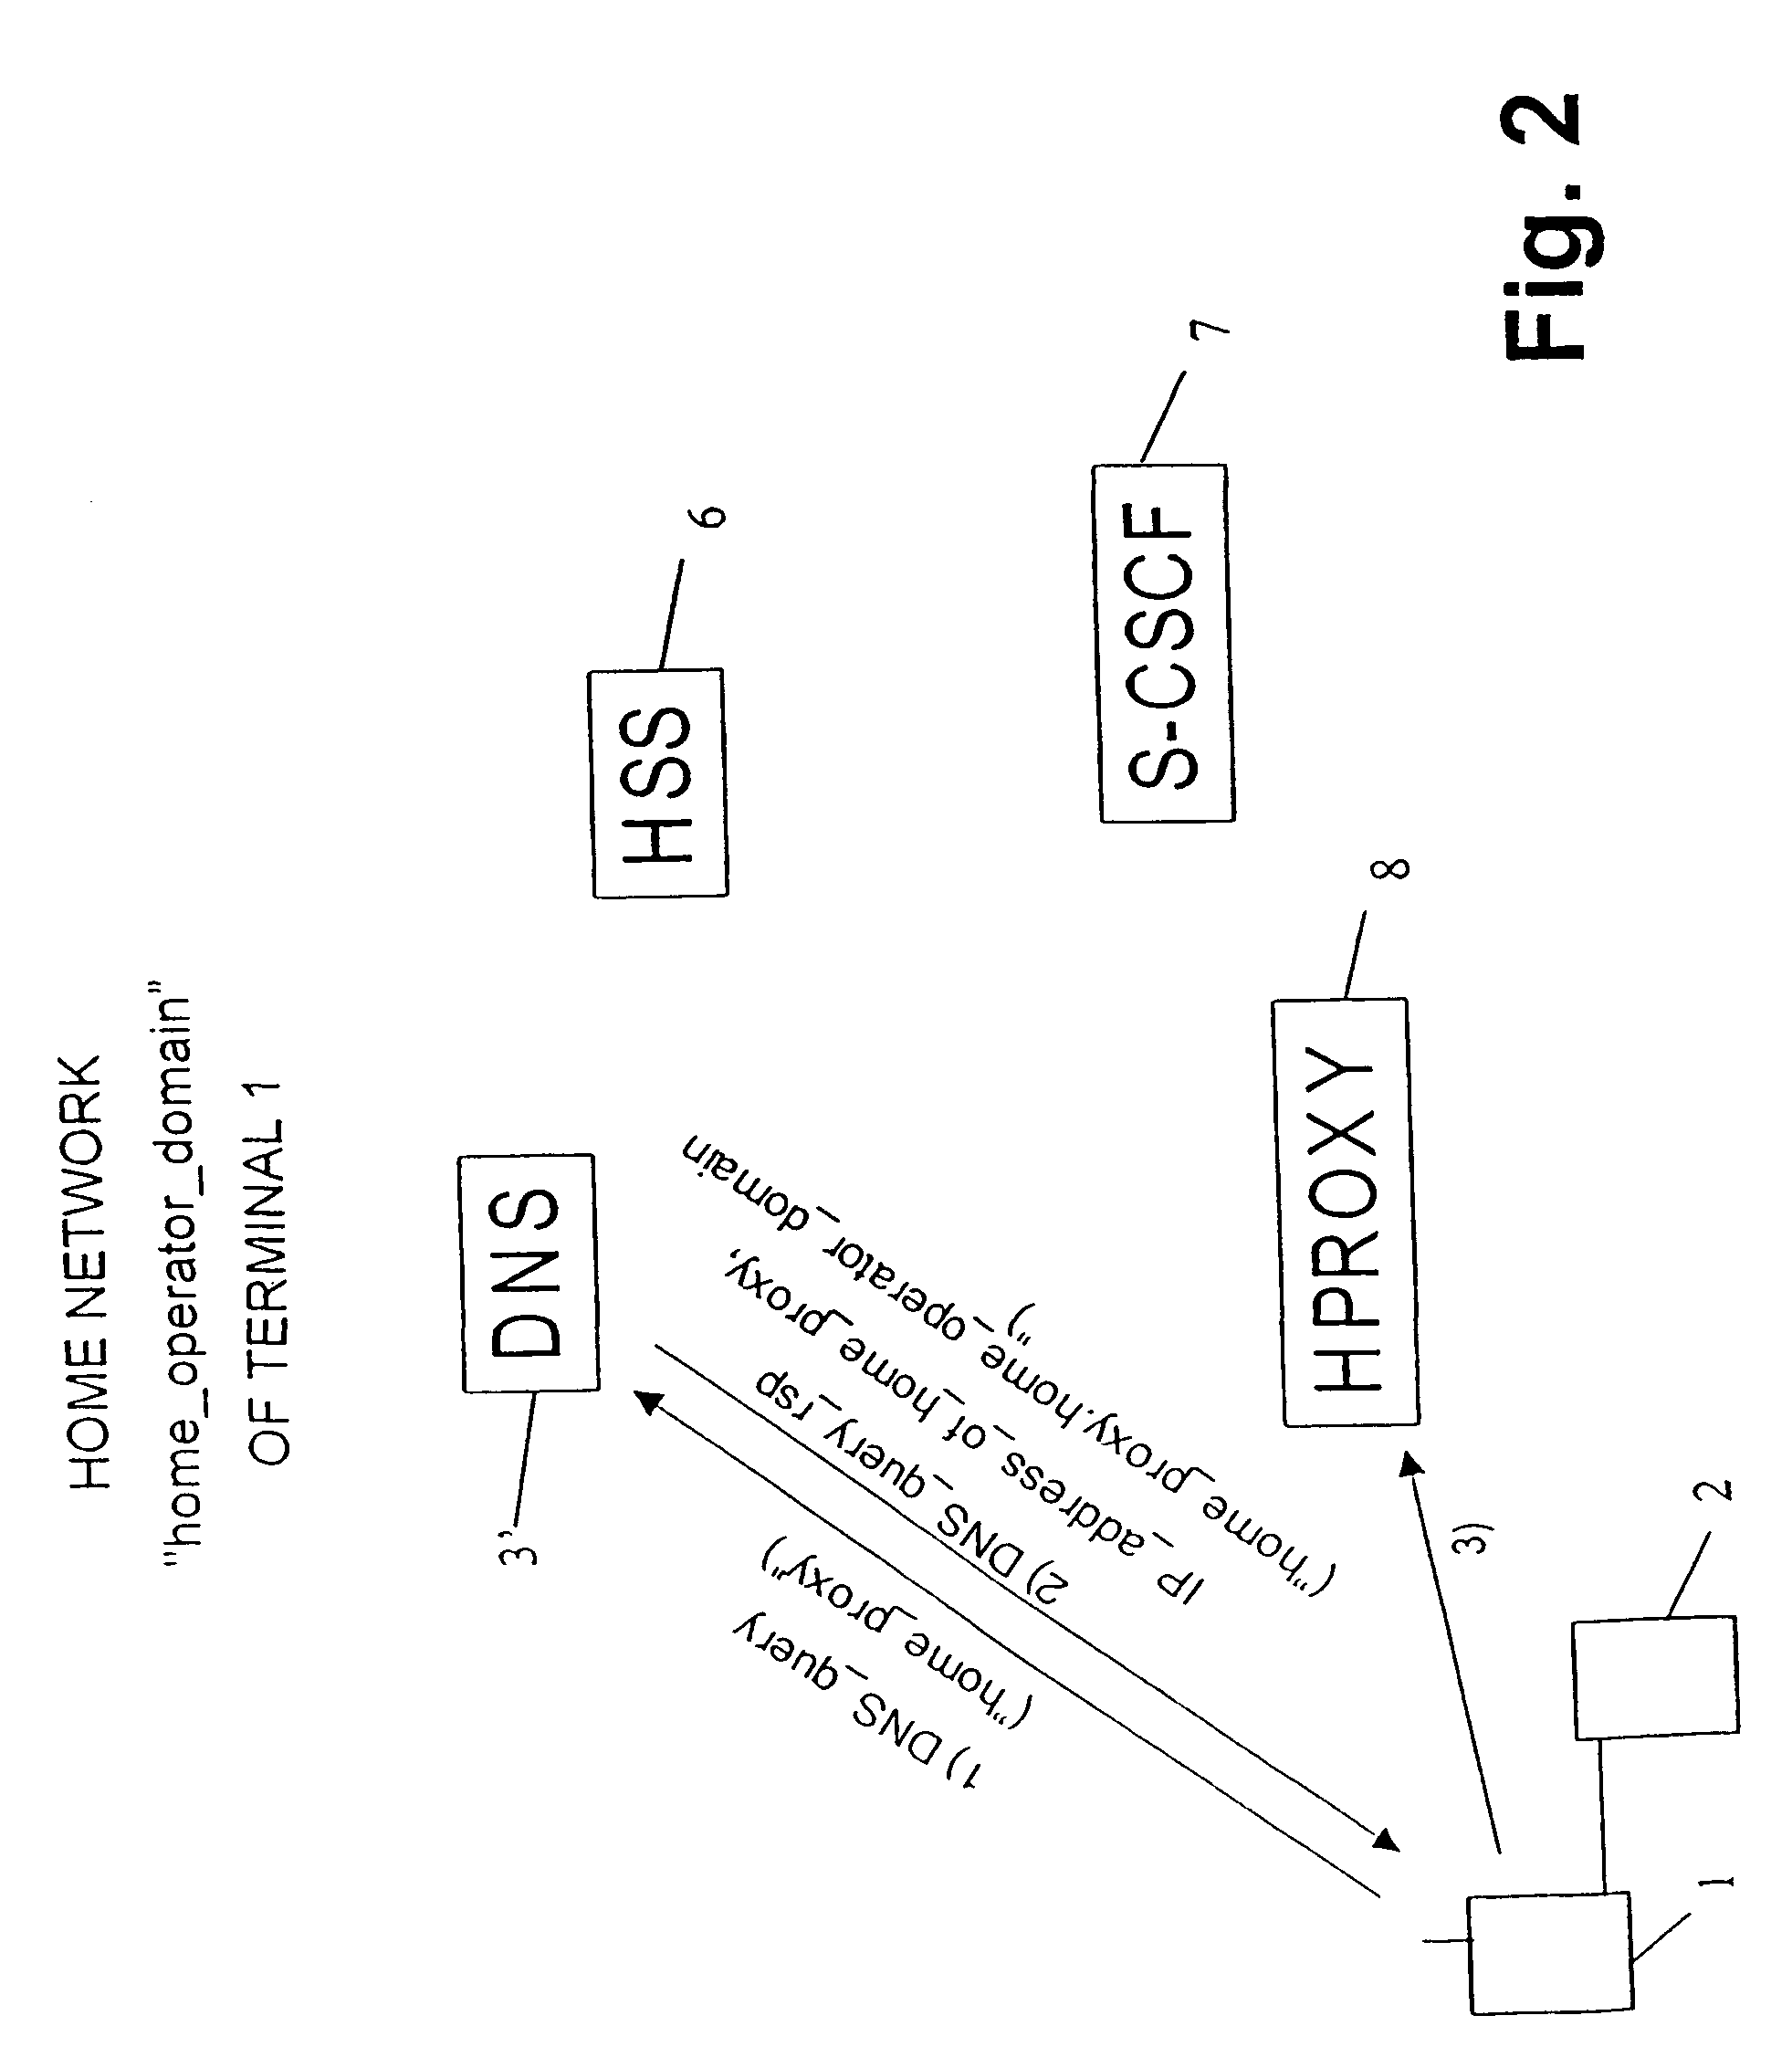 patent us 9 210 120 b2 Home Network Diagram with Switch and Router patent images patent images patent images